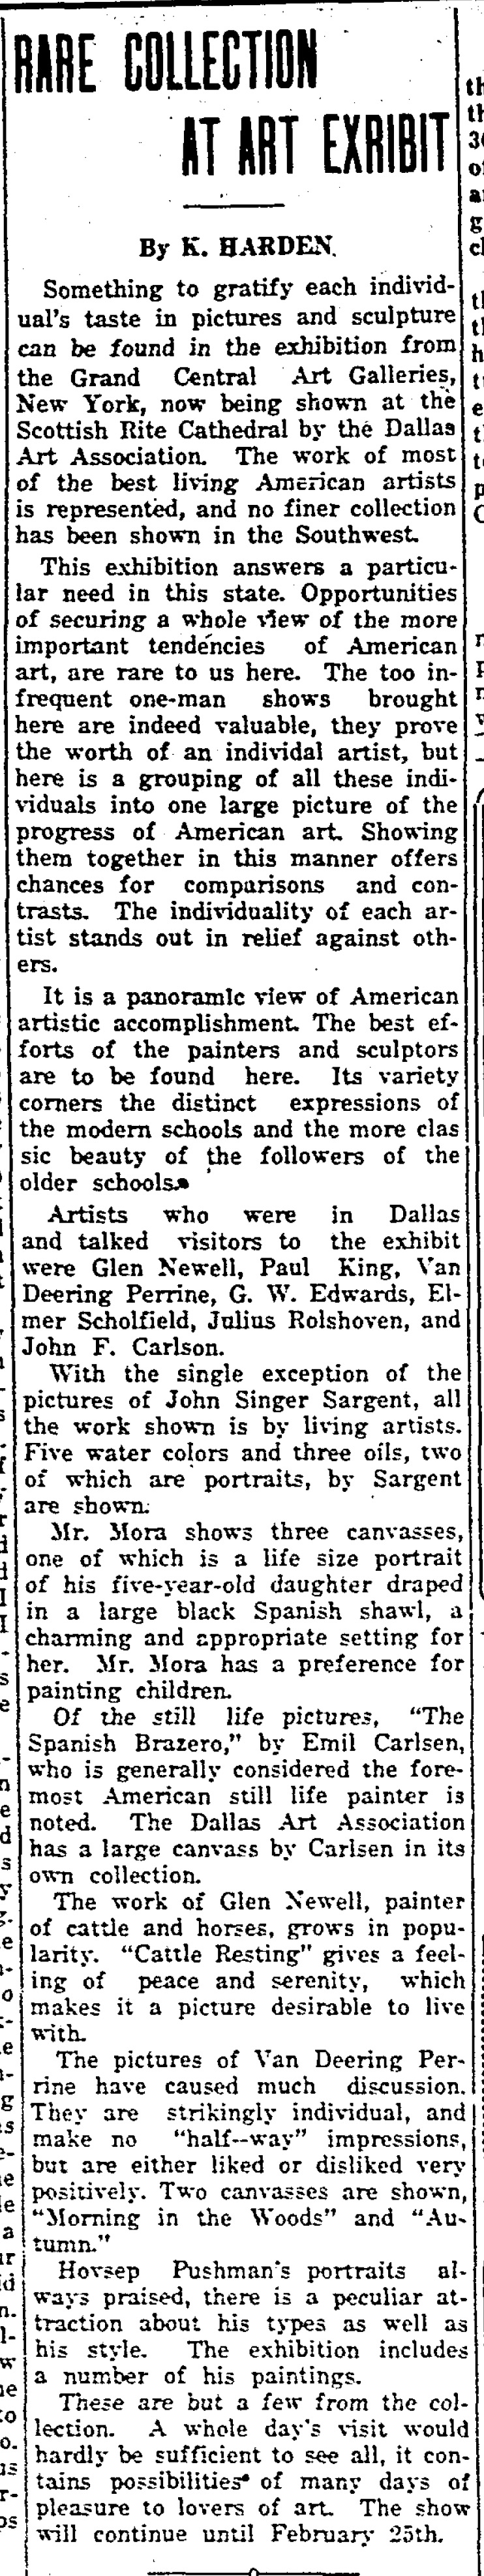 "The Semi-Weekly Campus, Southern Methodist University, Dallas, TX, ""Rare Collection at Art Exhibit"" by K. Harden, Wednesday, February 16, 1927, volume 12, page 2, not illustrated"